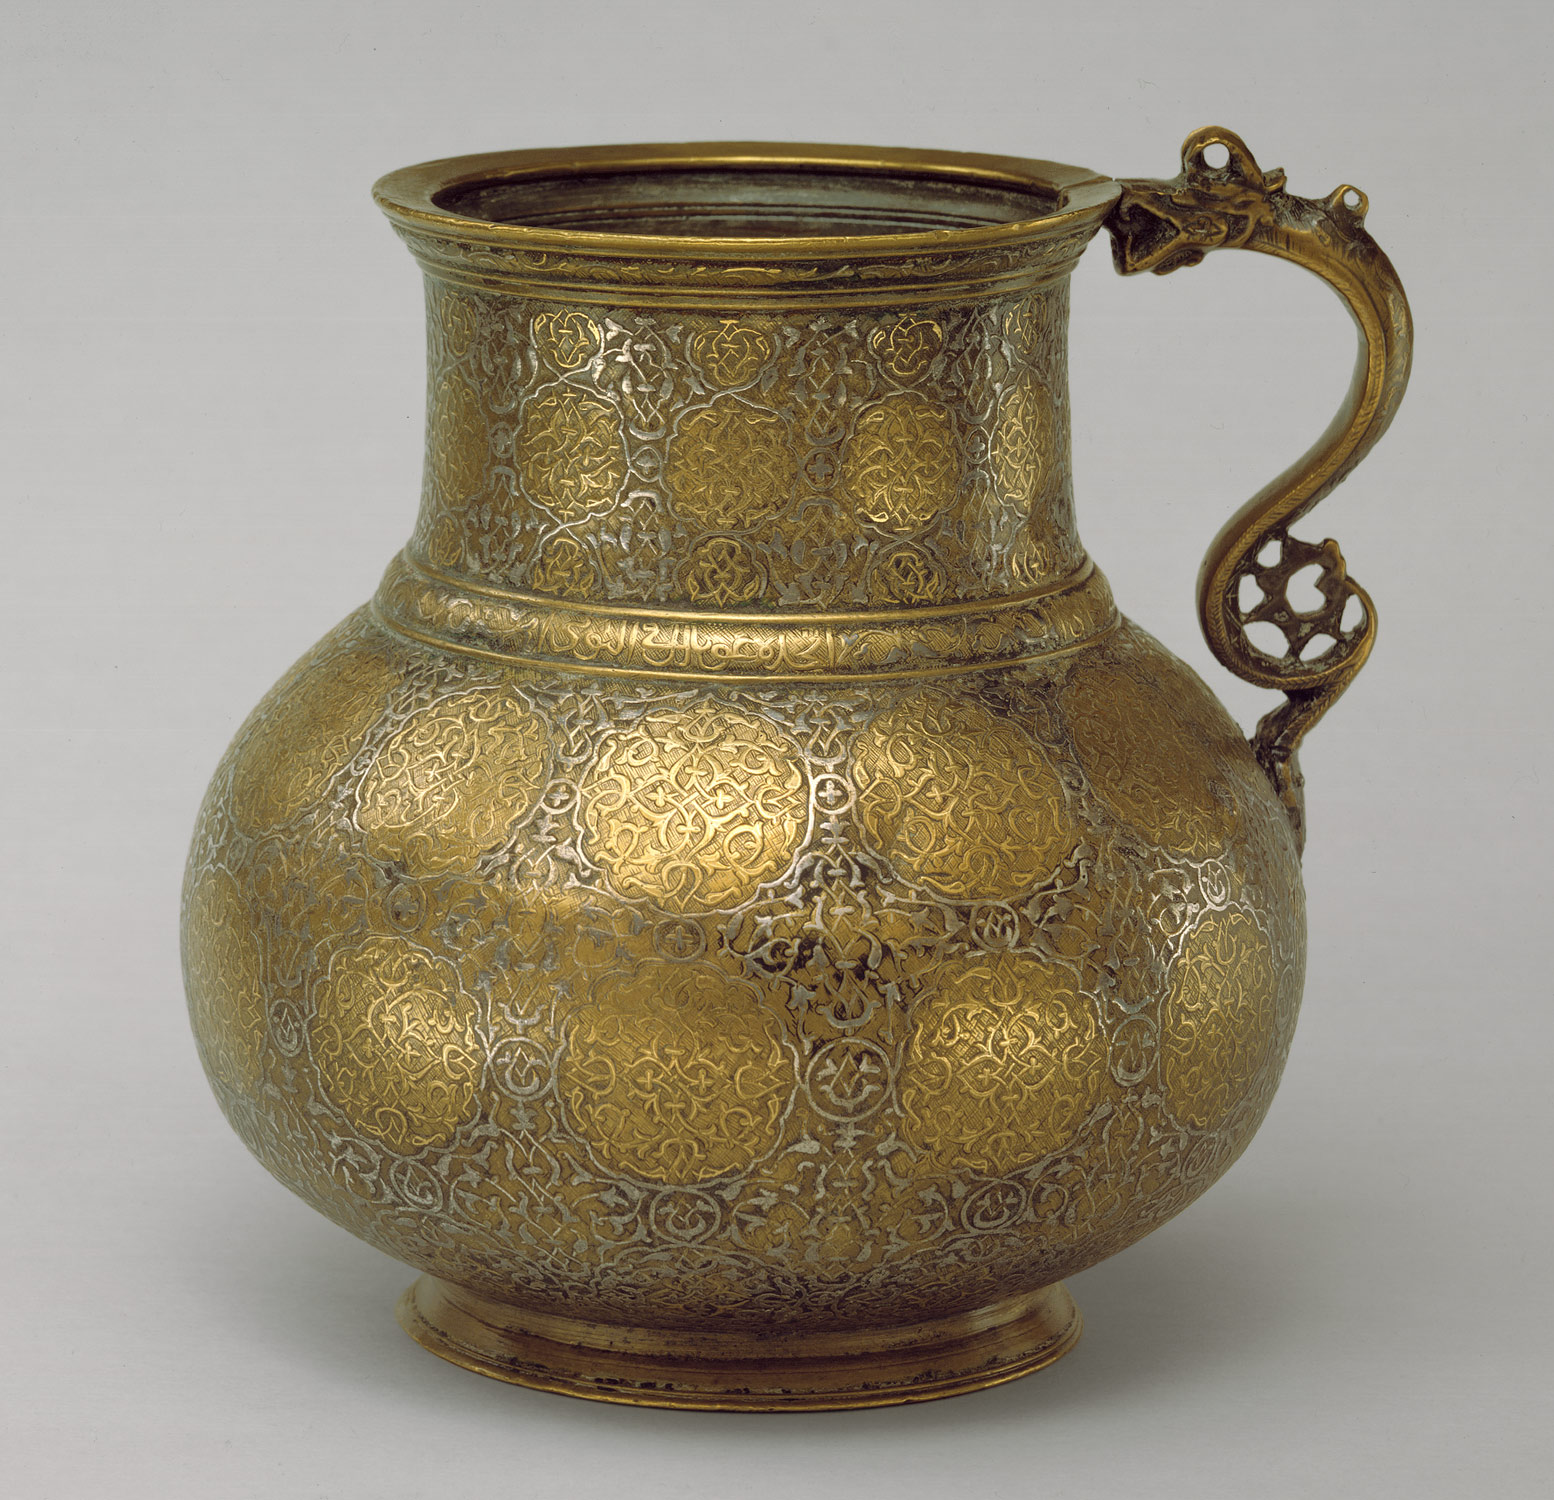 Dragon-Handled Jug with Inscription